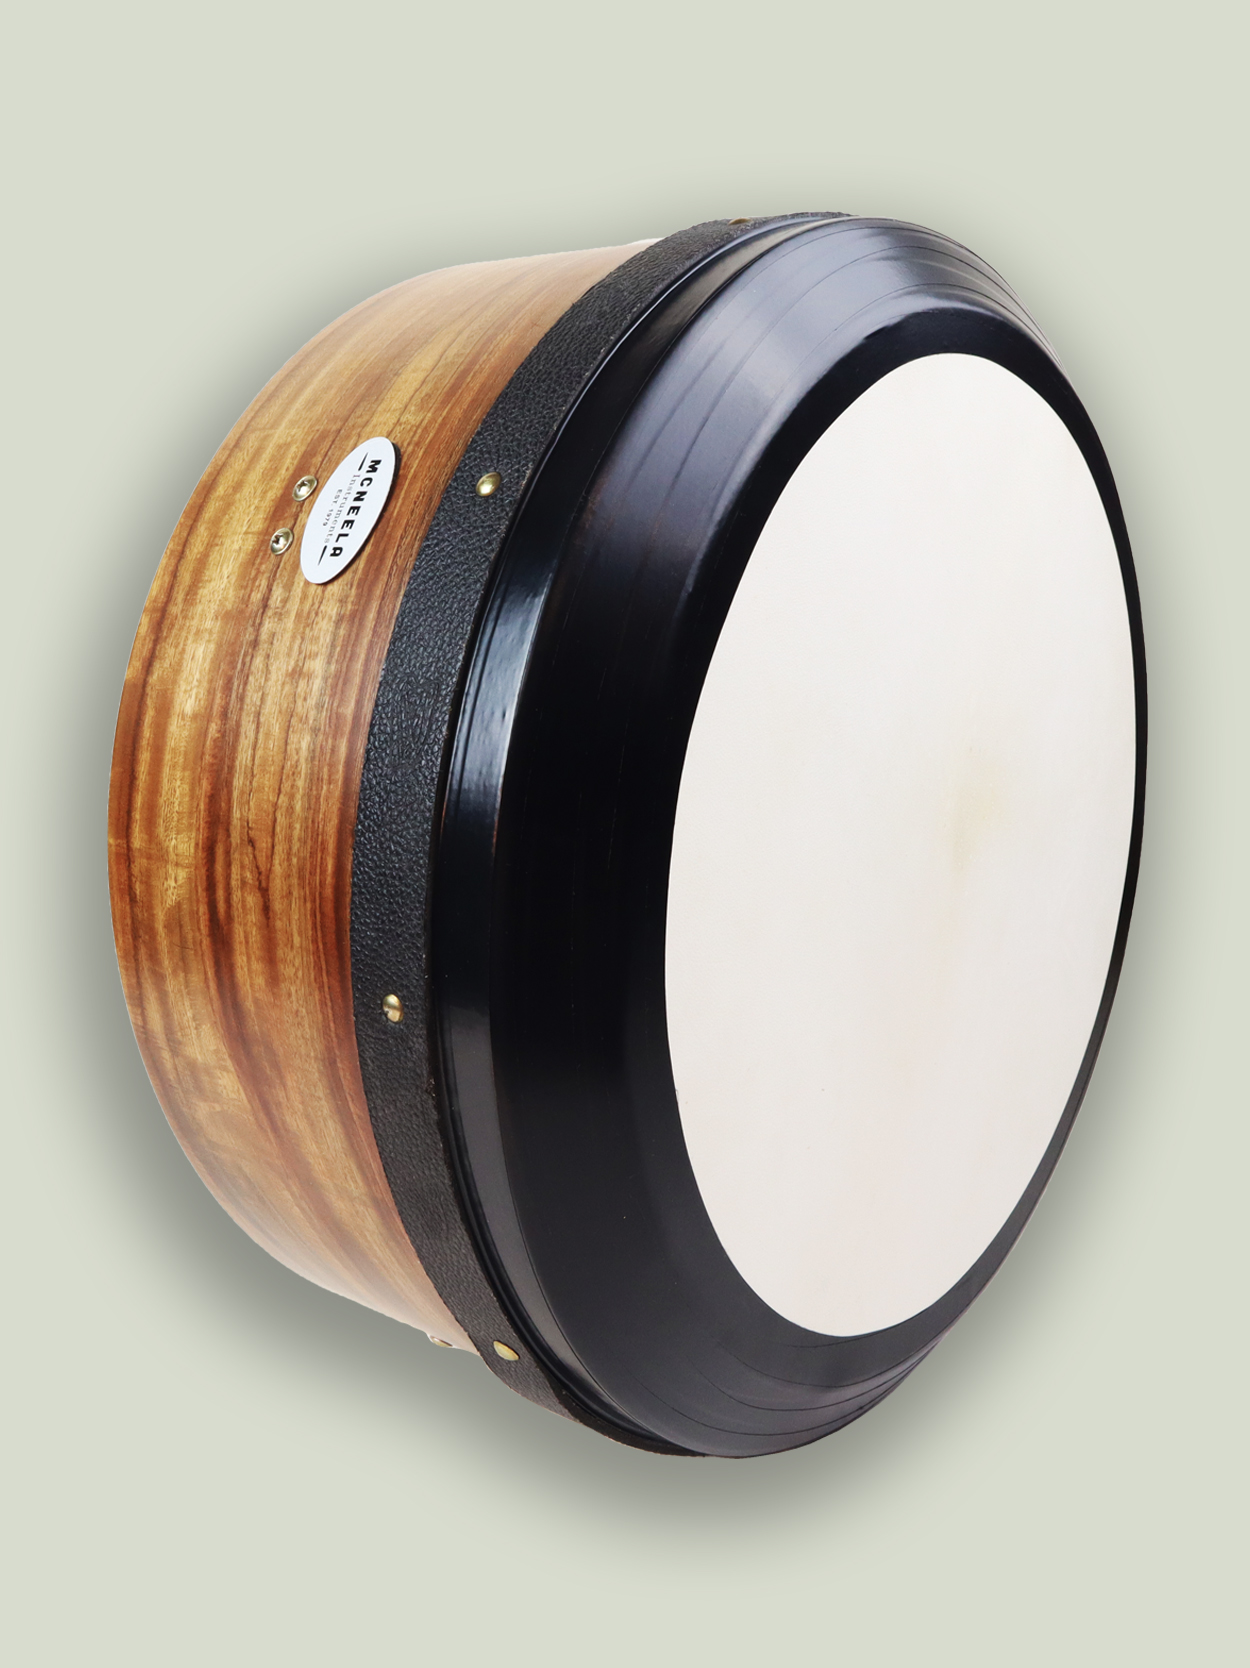 The McNeela Rosewood bodhrán is on e of the most beautiful bodhráns on sale today plus it produces a lush bass that will stir the soul